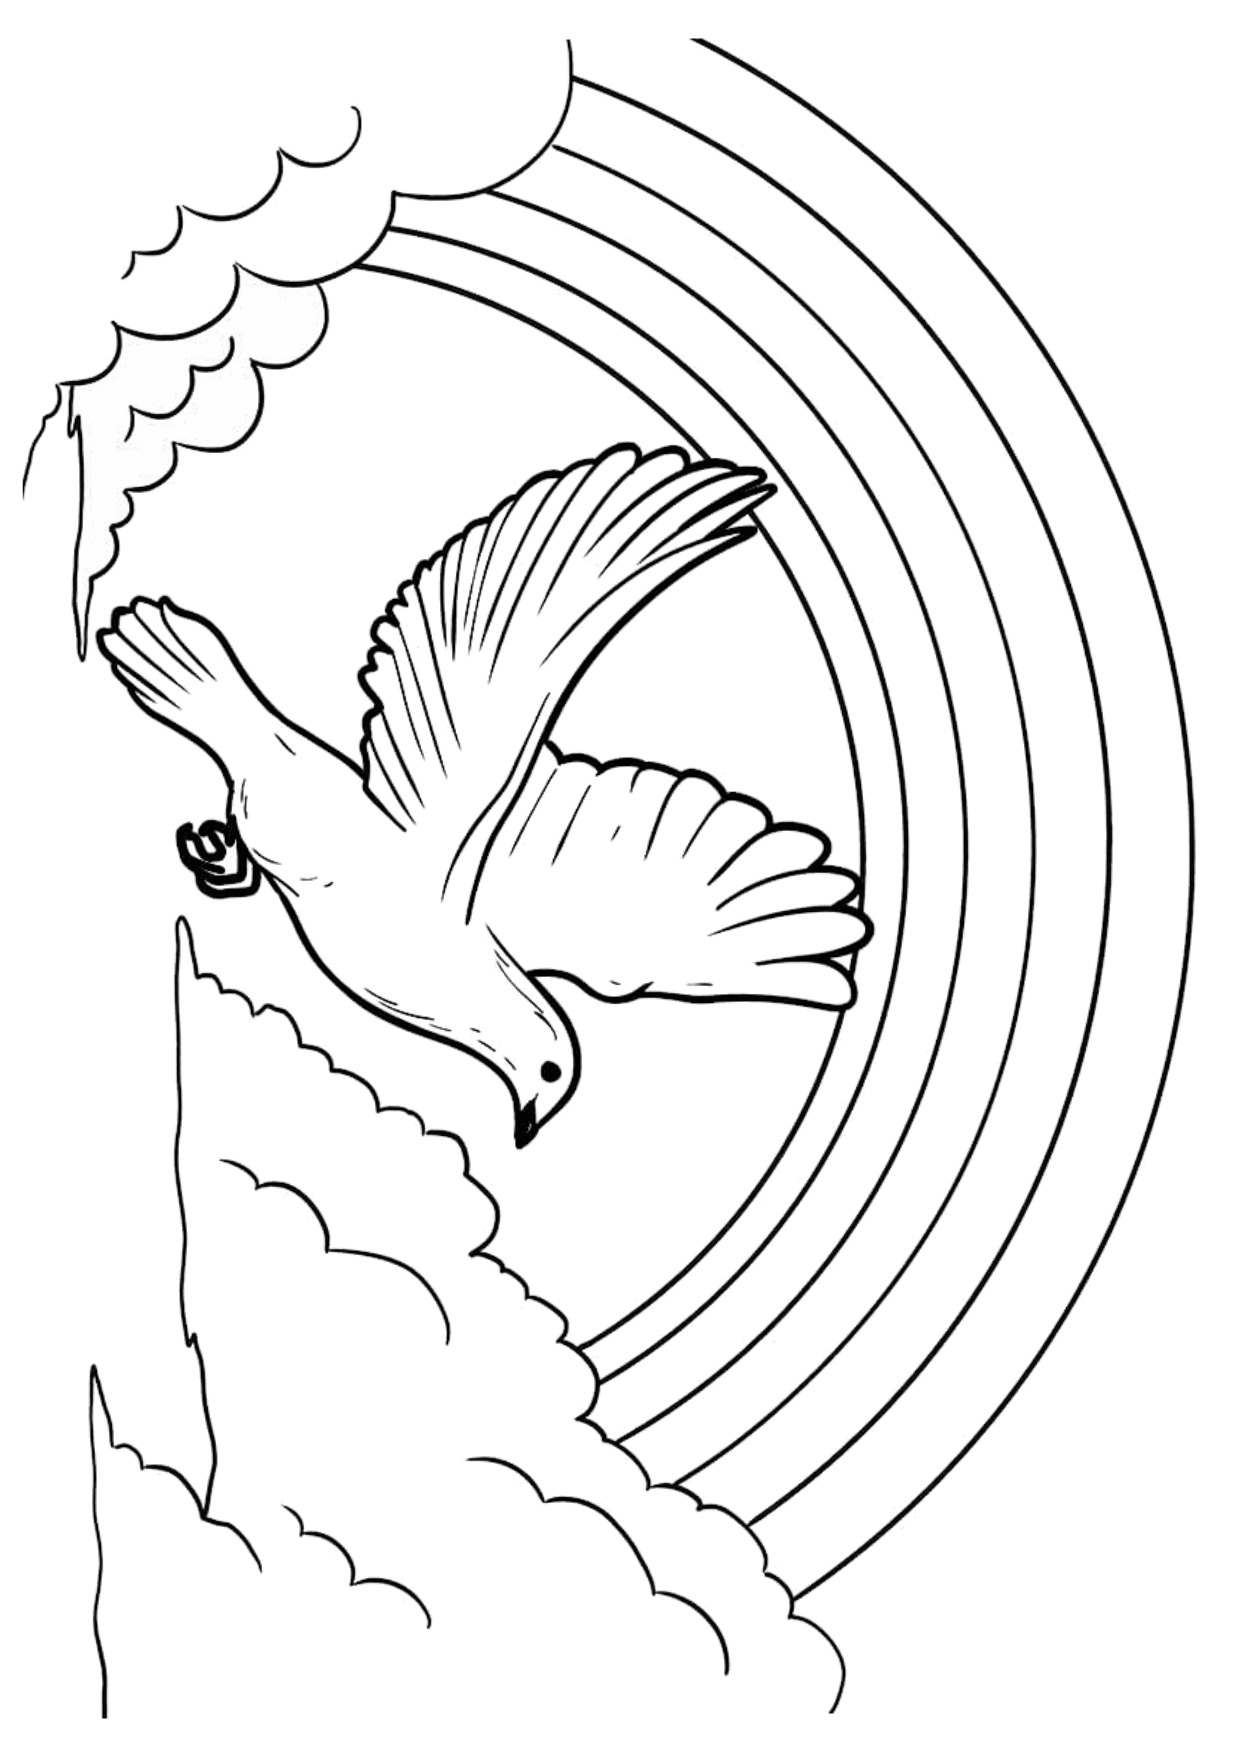 White Dove Flying And Rainbow Coloring Page Bubakids Com Dove Flying Coloring Pages White Doves [ 1754 x 1240 Pixel ]